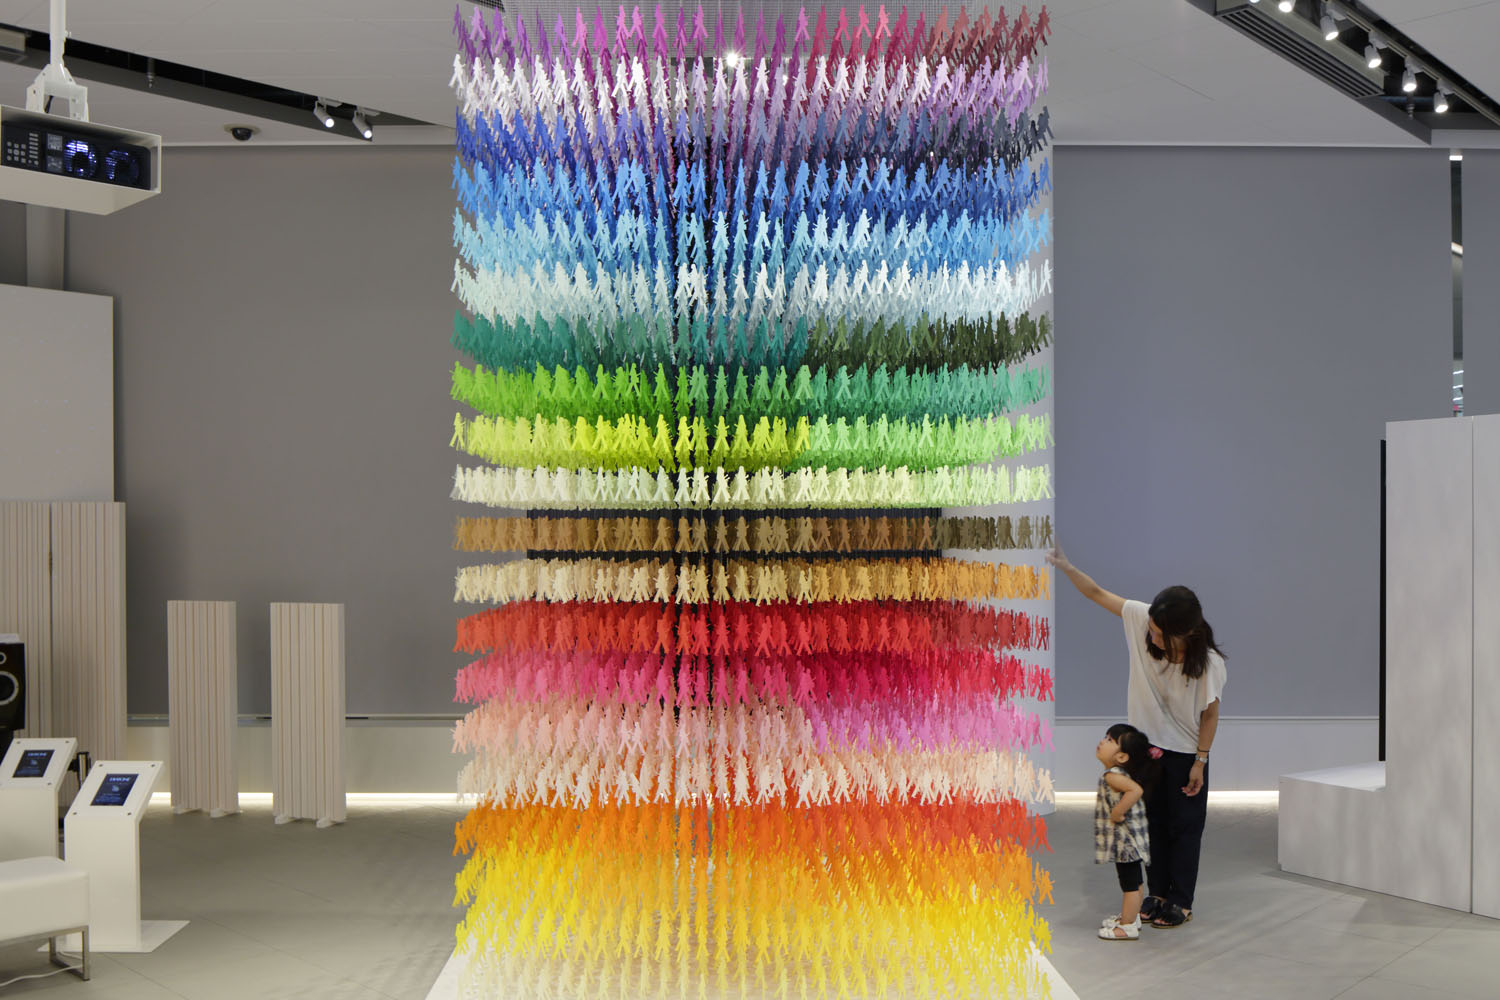 Giant Paper Sculptures That Use Color to Divide and Establish Space Within a Room by Emmanuelle Moureaux